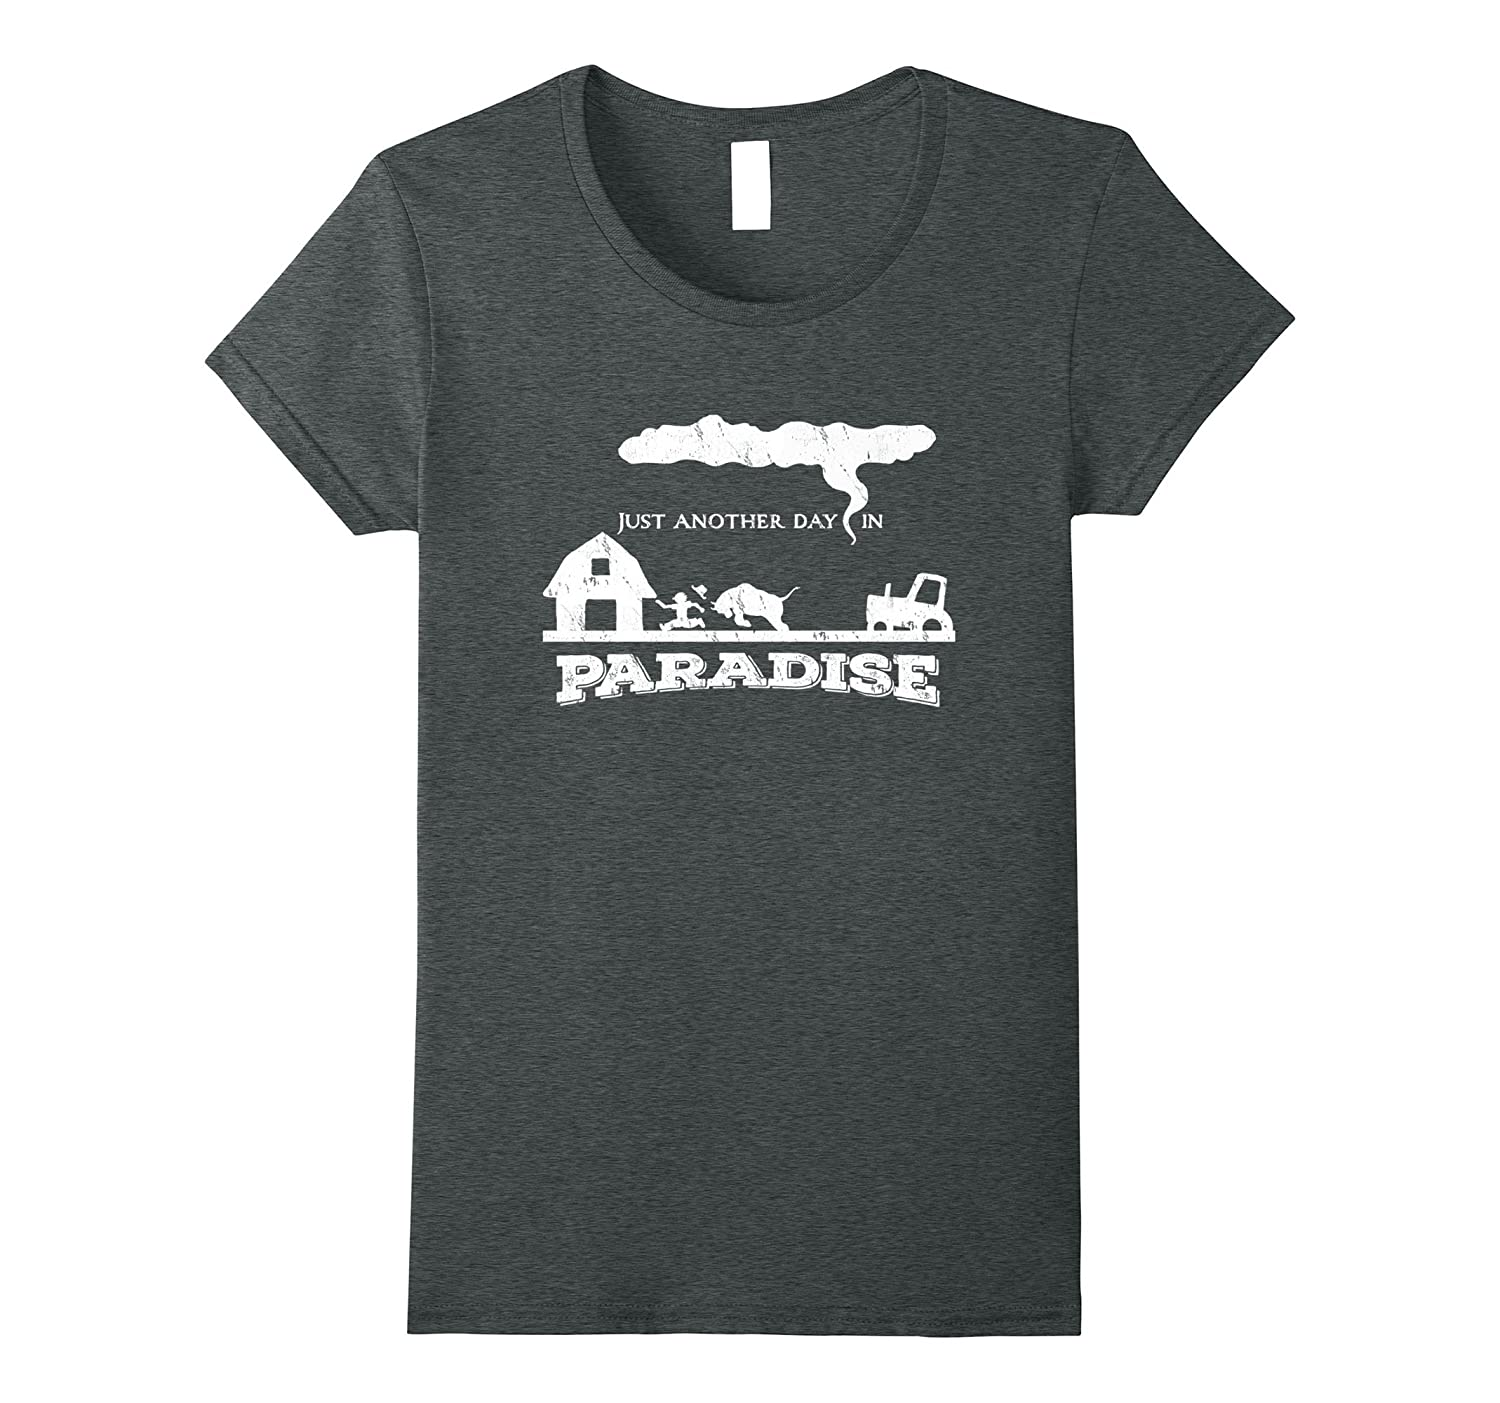 Just Another Day In Paradise – funny farmer tractor t-shirt